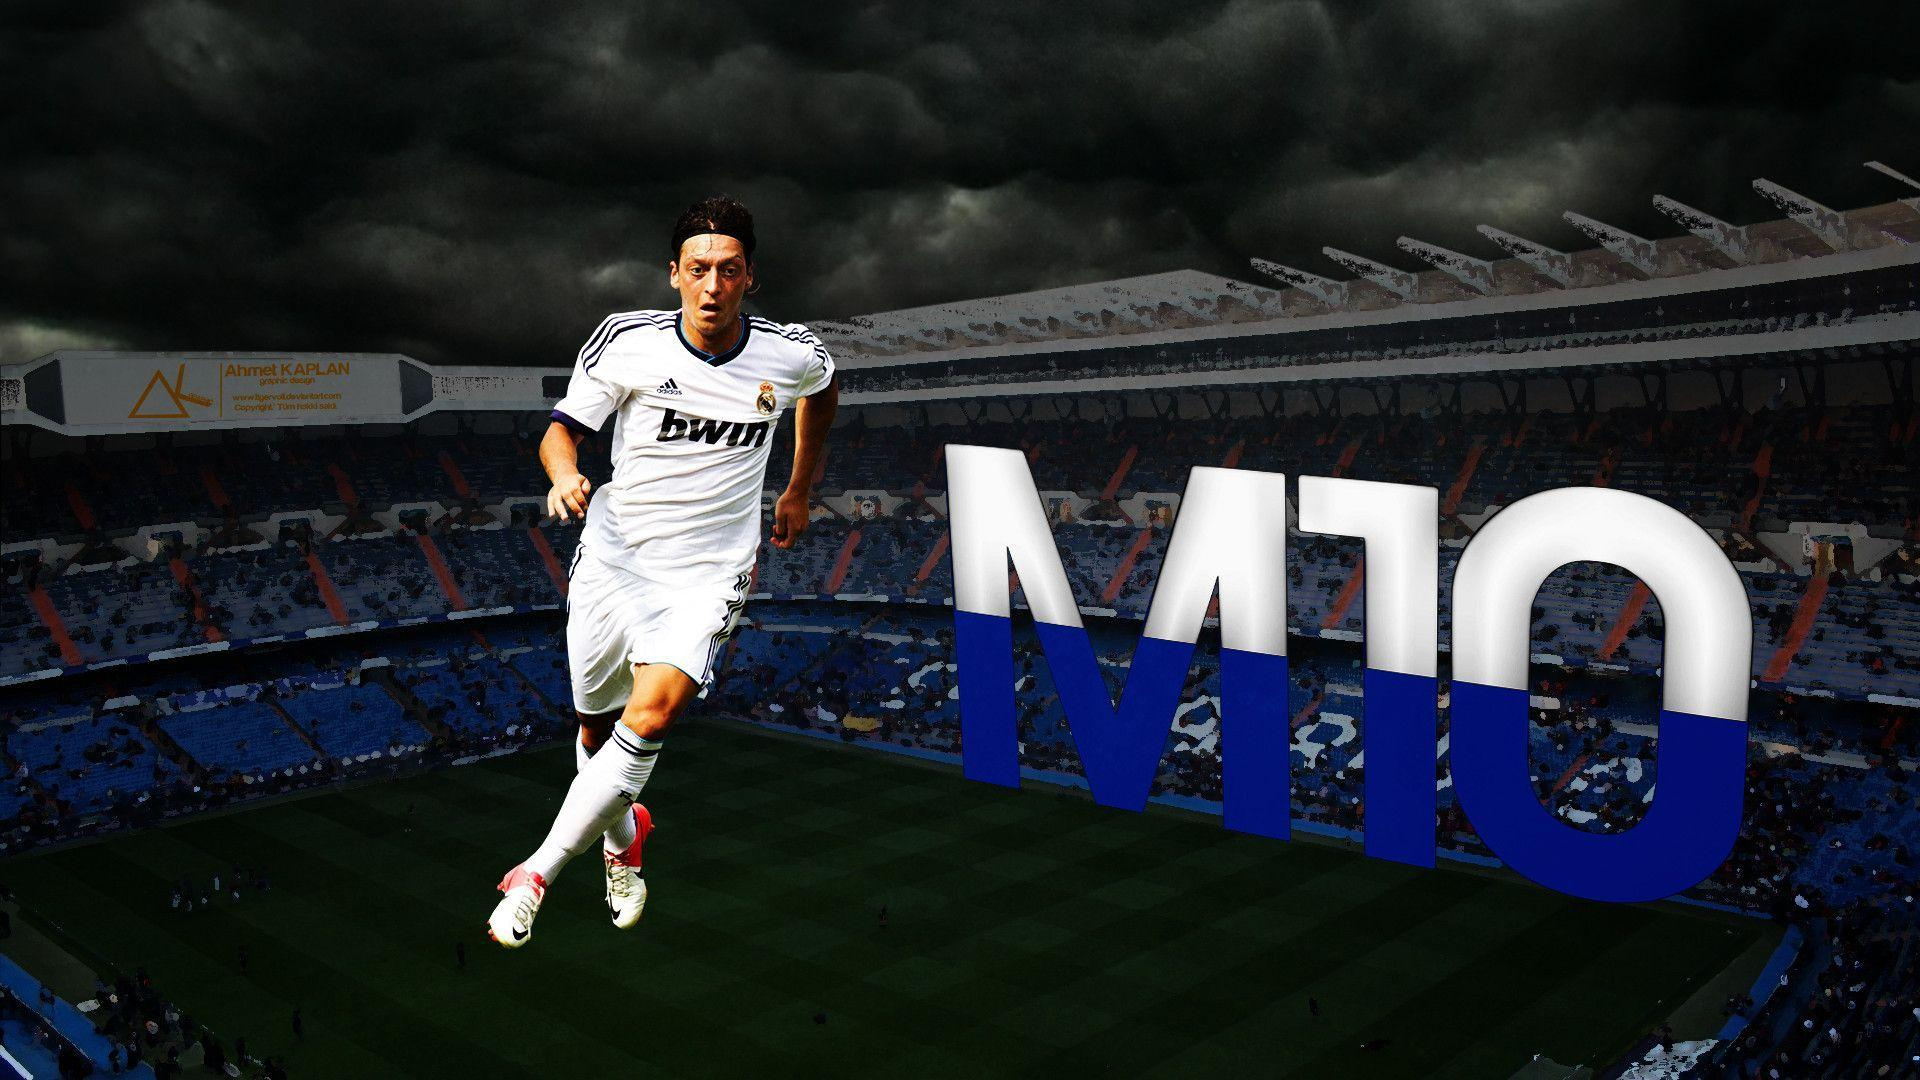 Mesut Ozil Wallpapers by tigervolt